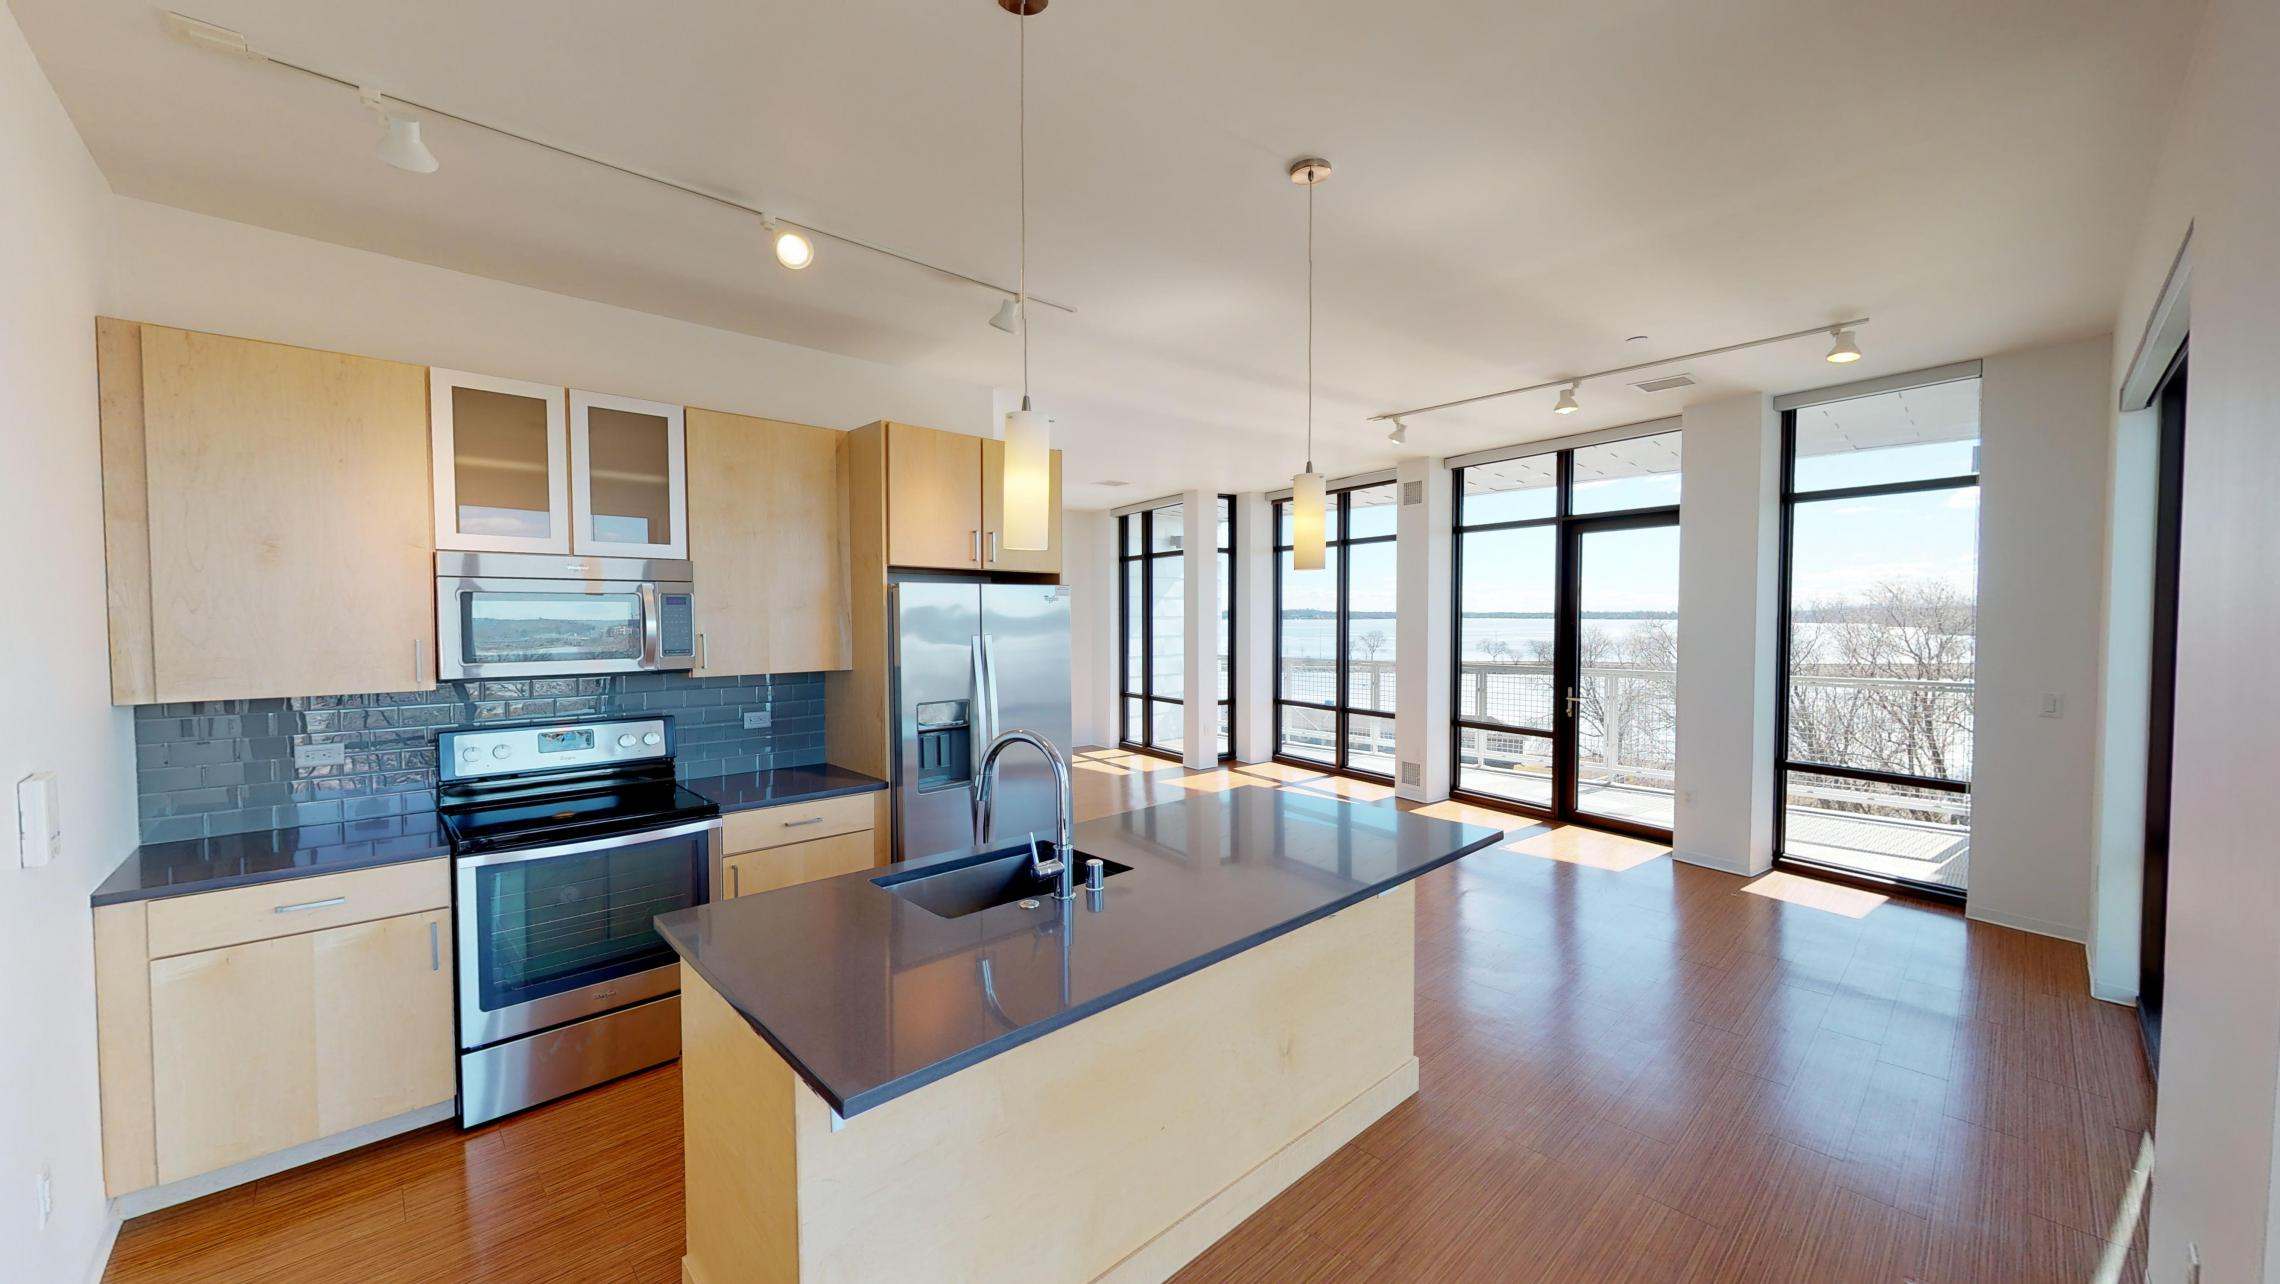 SEVEN27-Apartment-540-Two-bedroom-Modern-Upscale-Views-City-Downtown-Madison-Lake-Terrace-Living